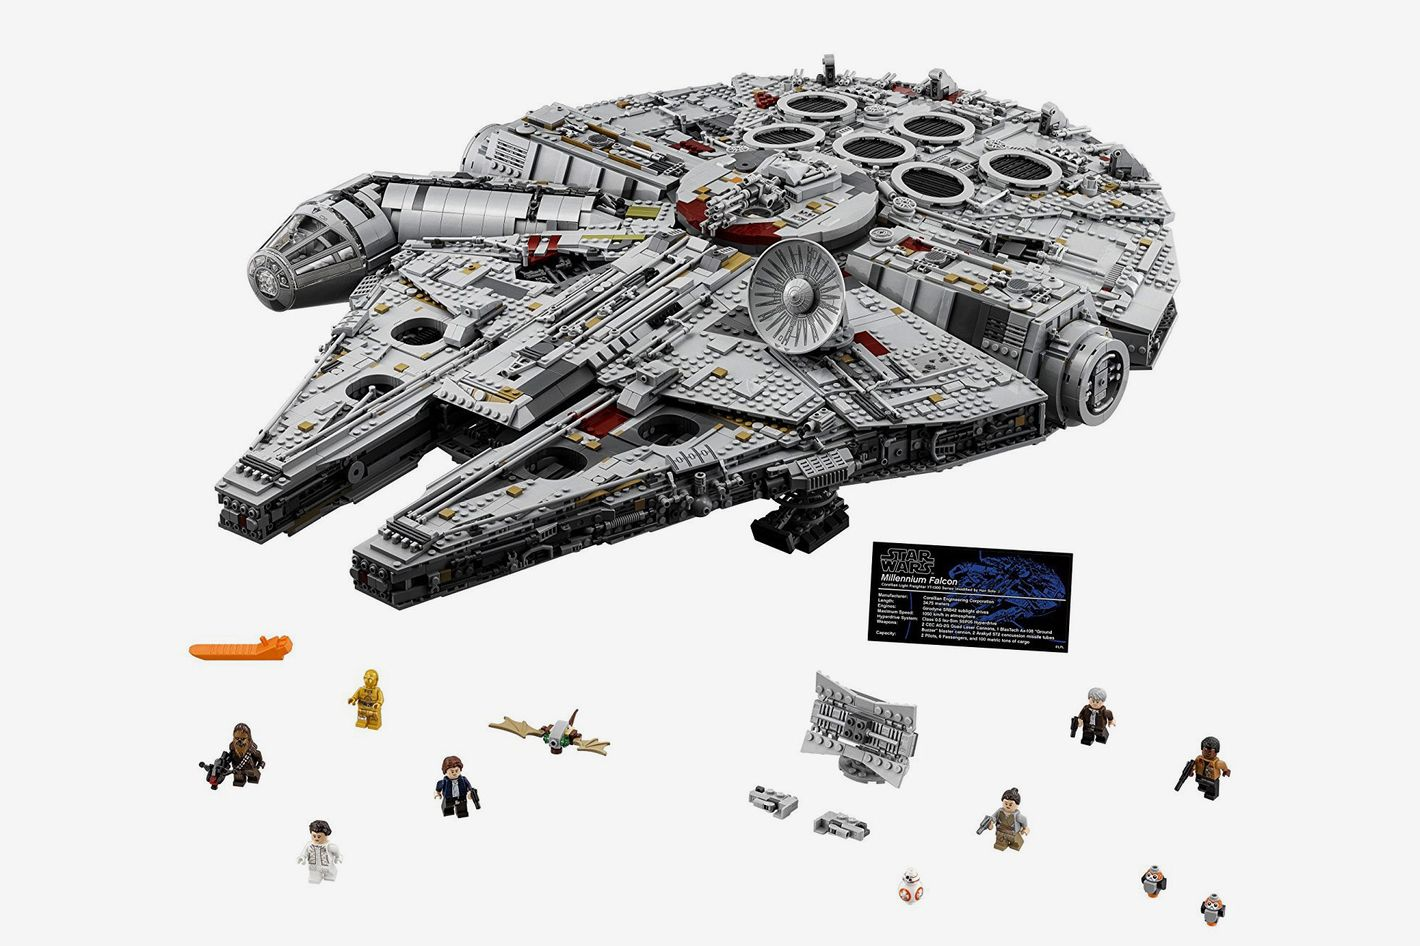 Specialty toy of the year:  LEGO Star Wars Millennium Falcon™